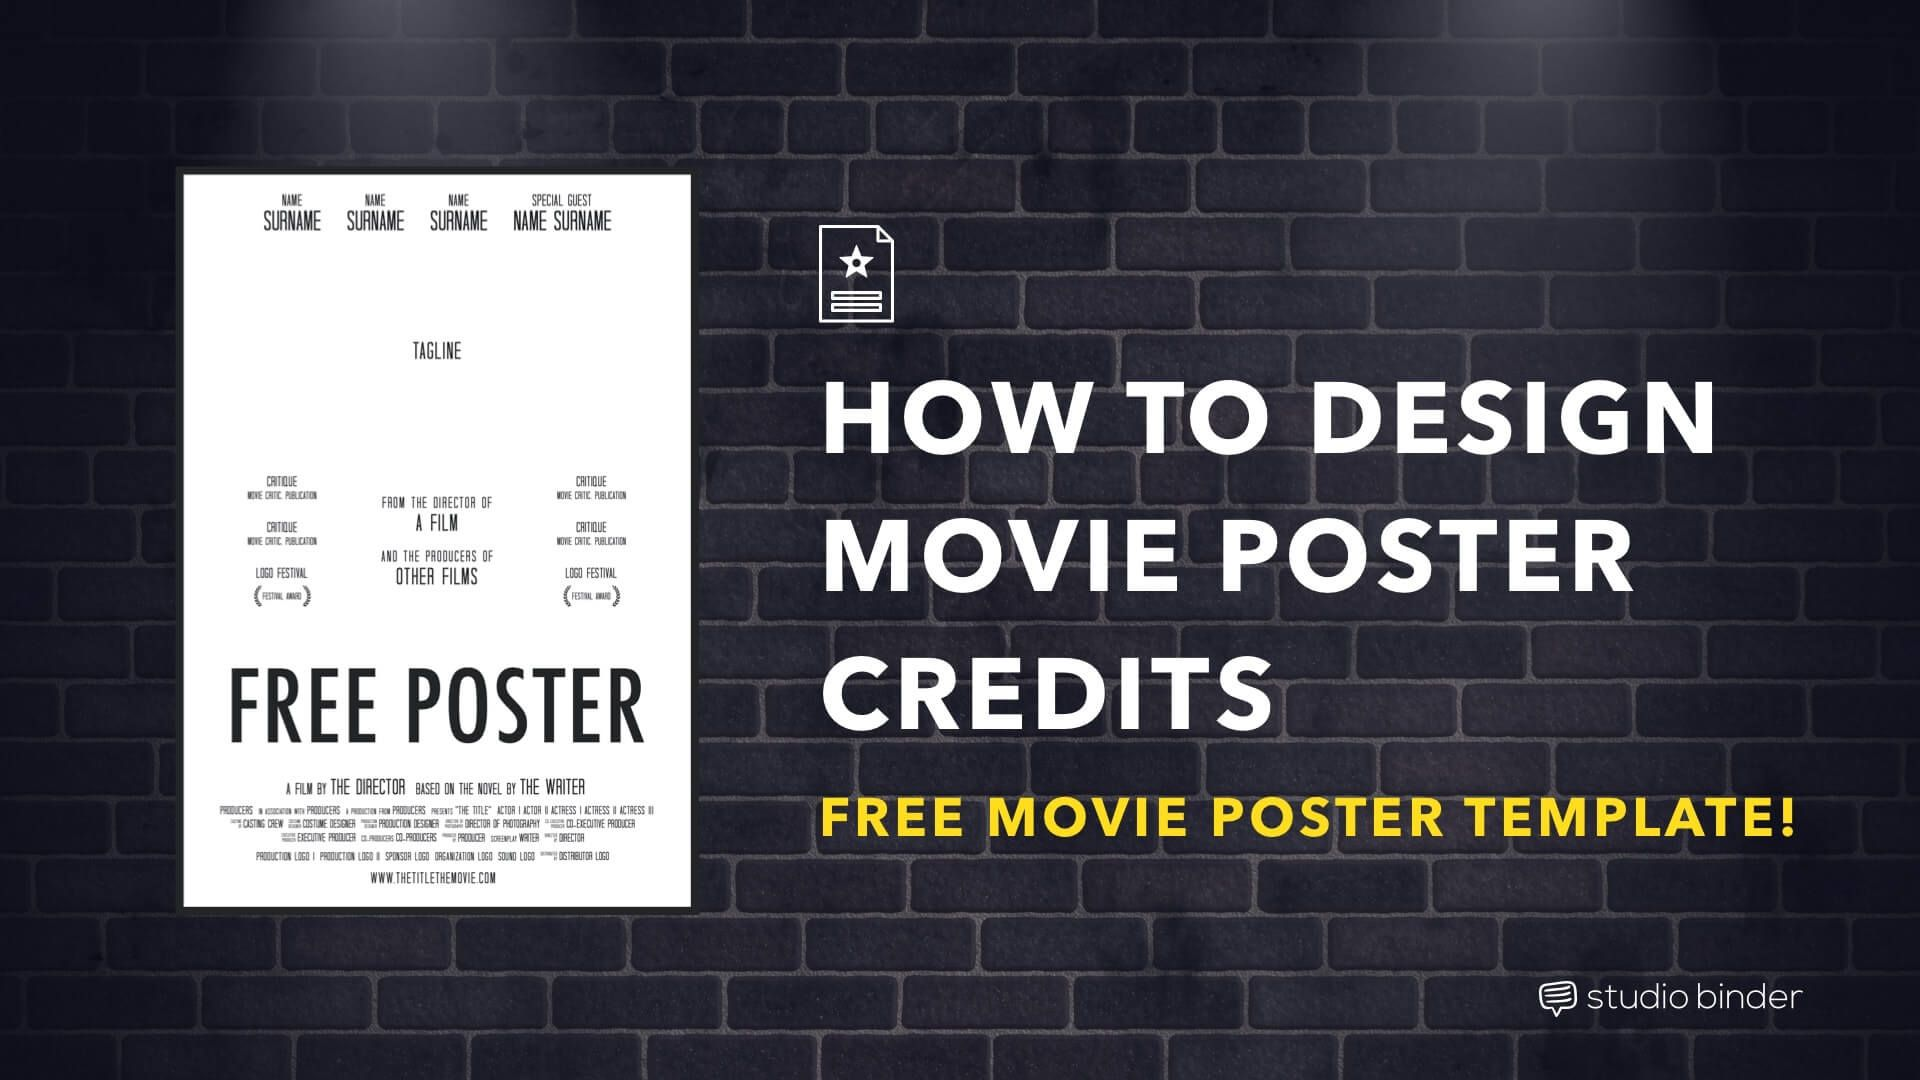 004 Exceptional Free Photoshop Movie Poster Template High Resolution  TemplatesFull